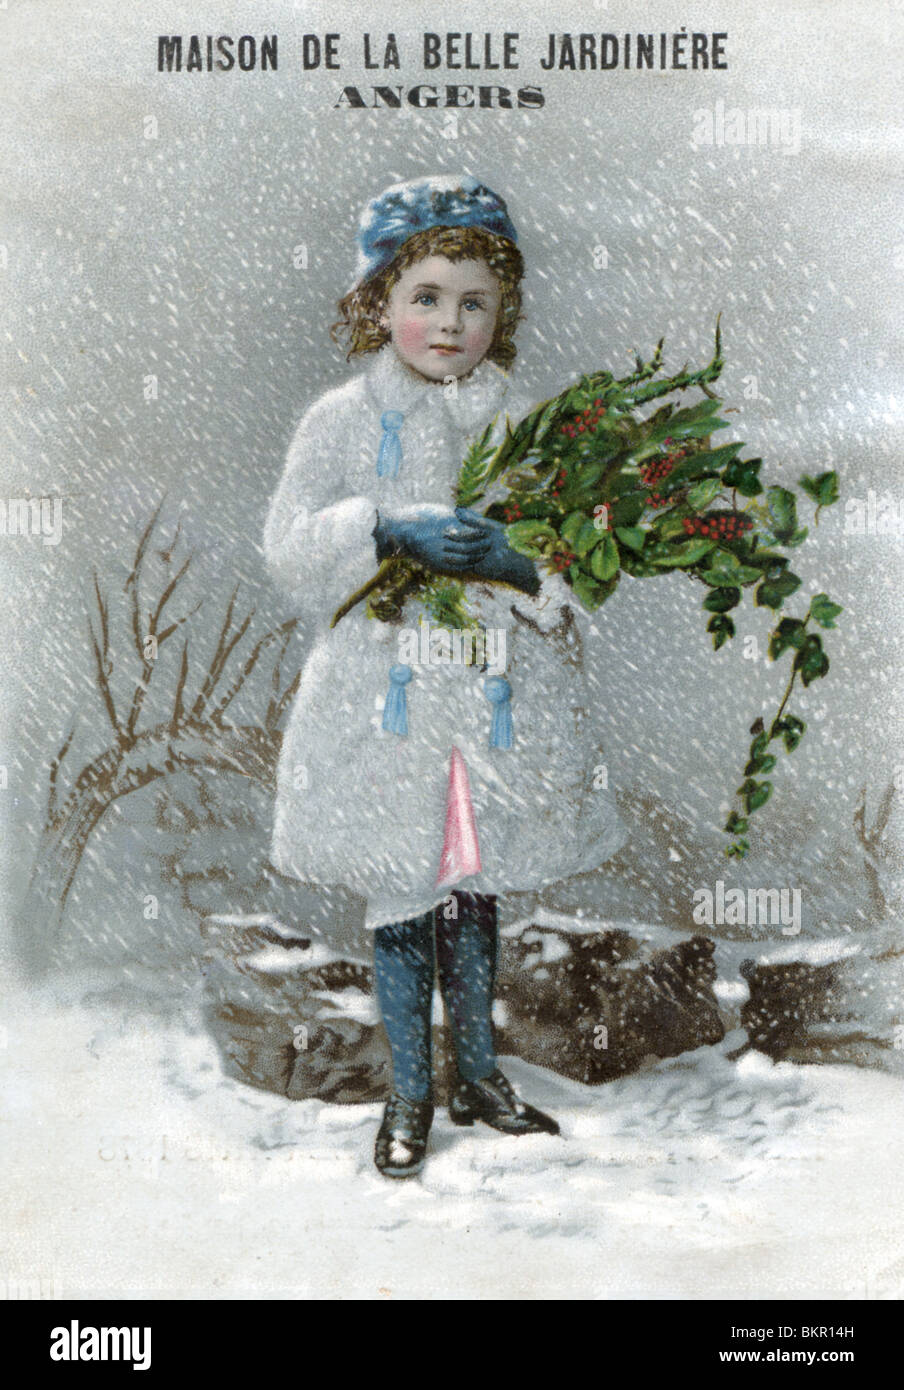 Early 1900s Christmas Stock Photos & Early 1900s Christmas Stock ...